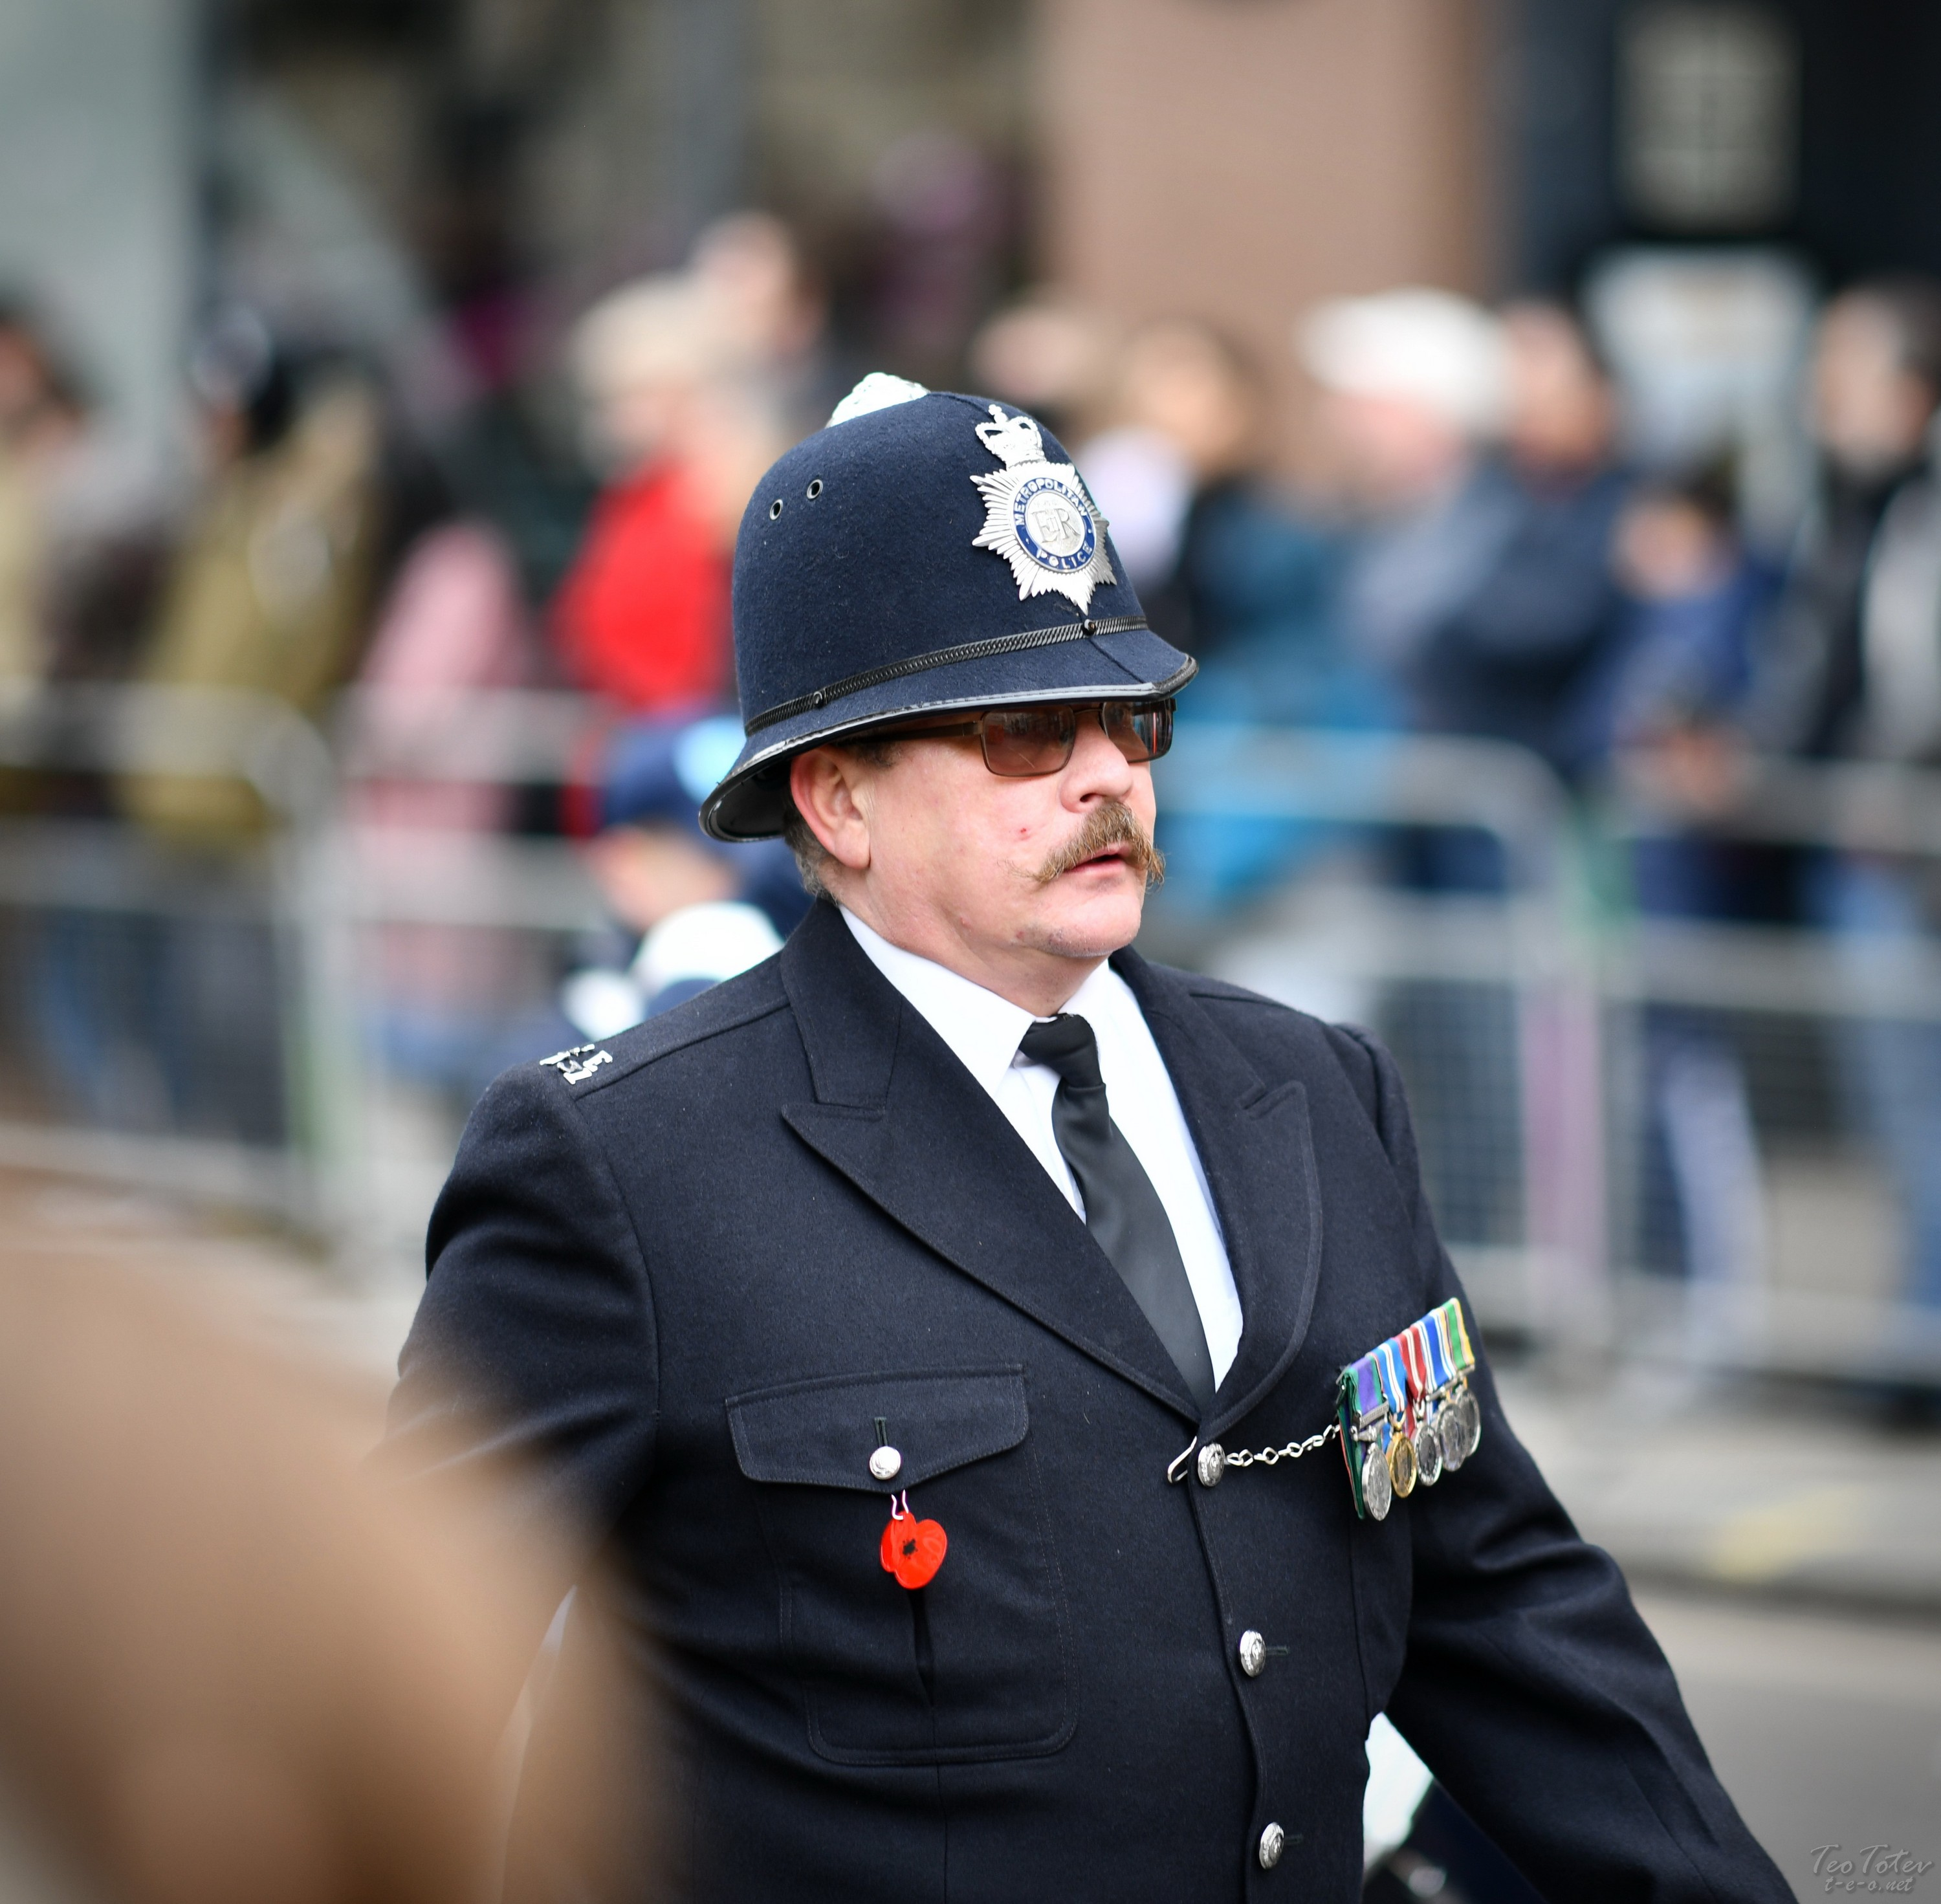 London Police with moustaches